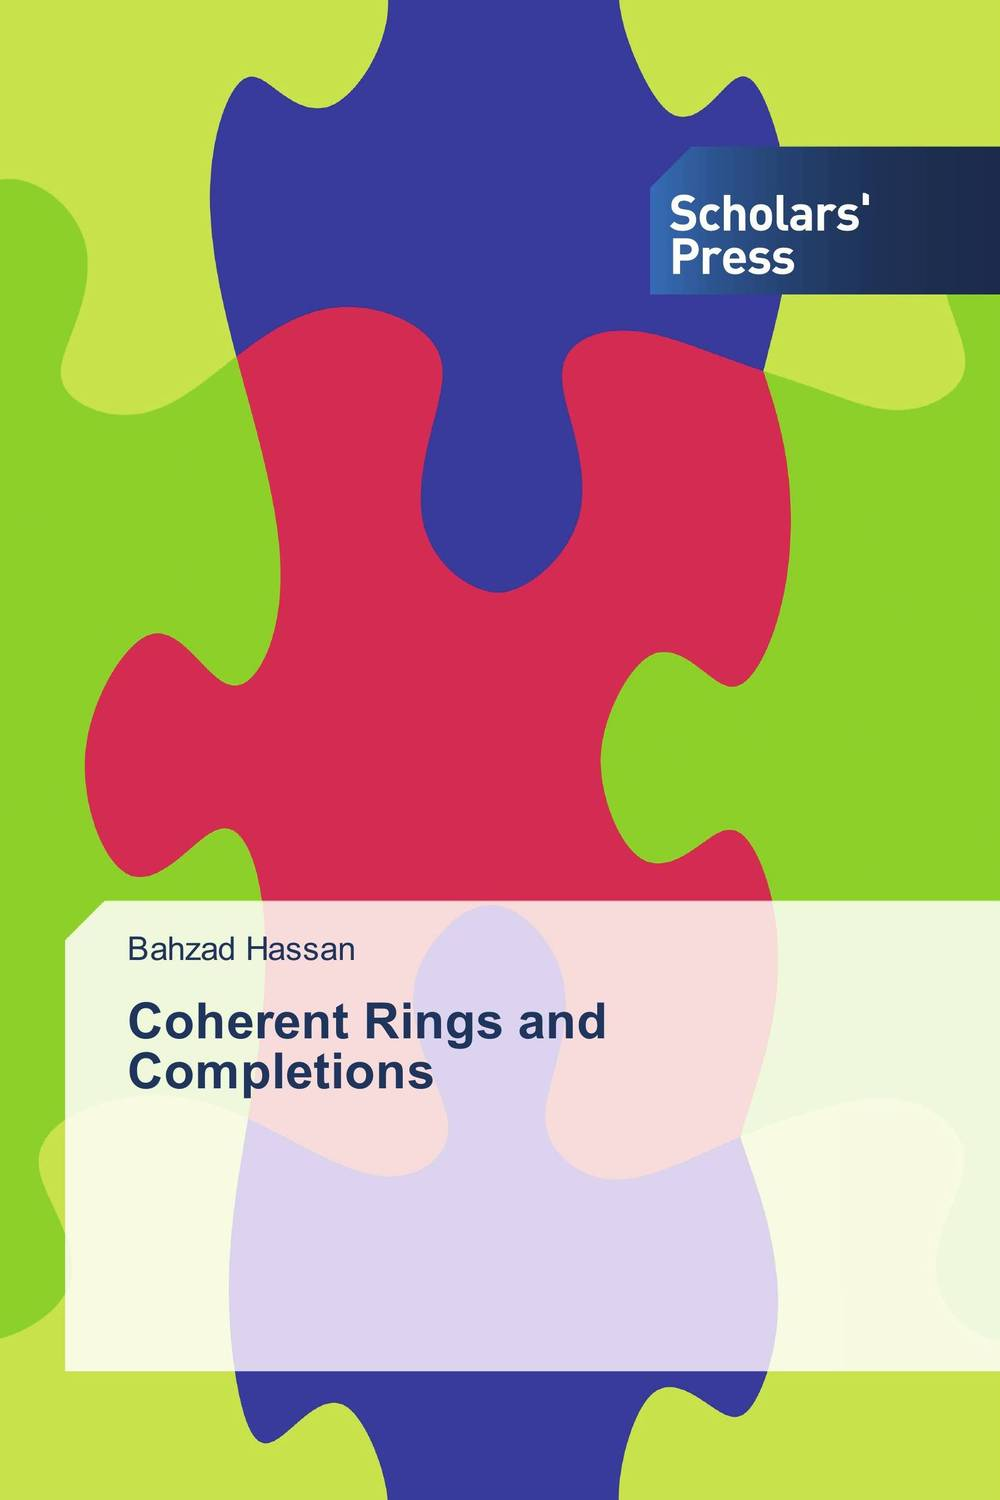 Coherent Rings and Completions completion